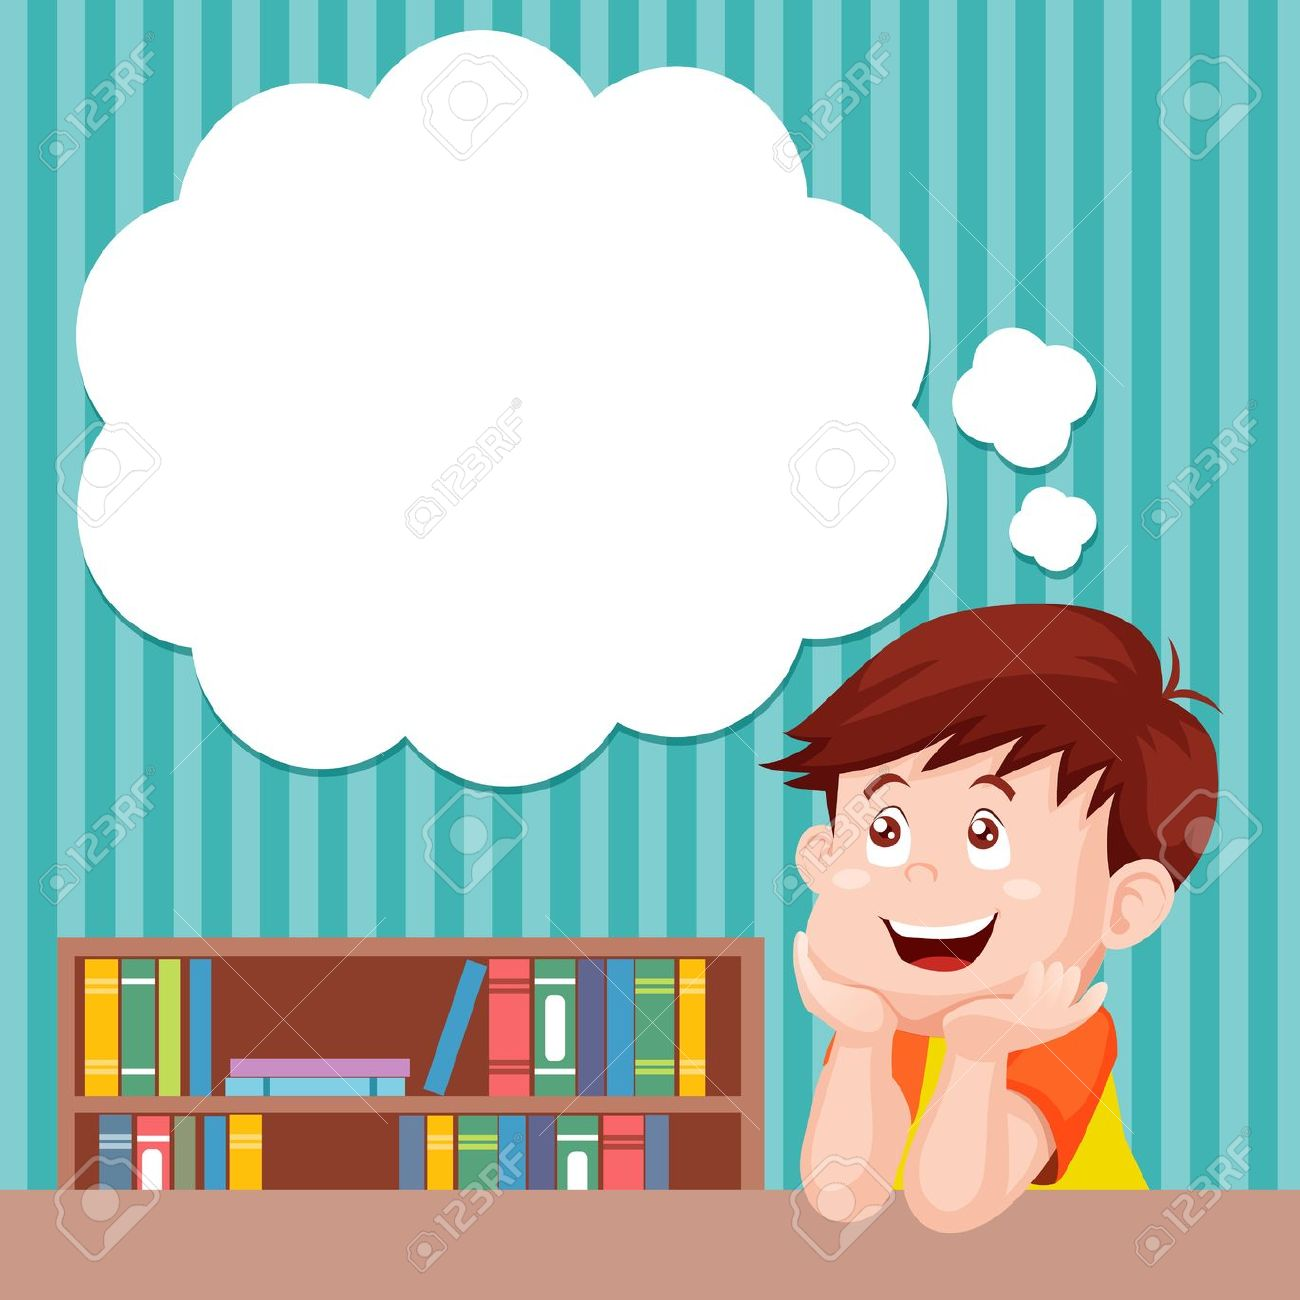 Child Thinking Clipart #14278. Cartoon Boy Thinking With White Bubble For Text Royalty Free